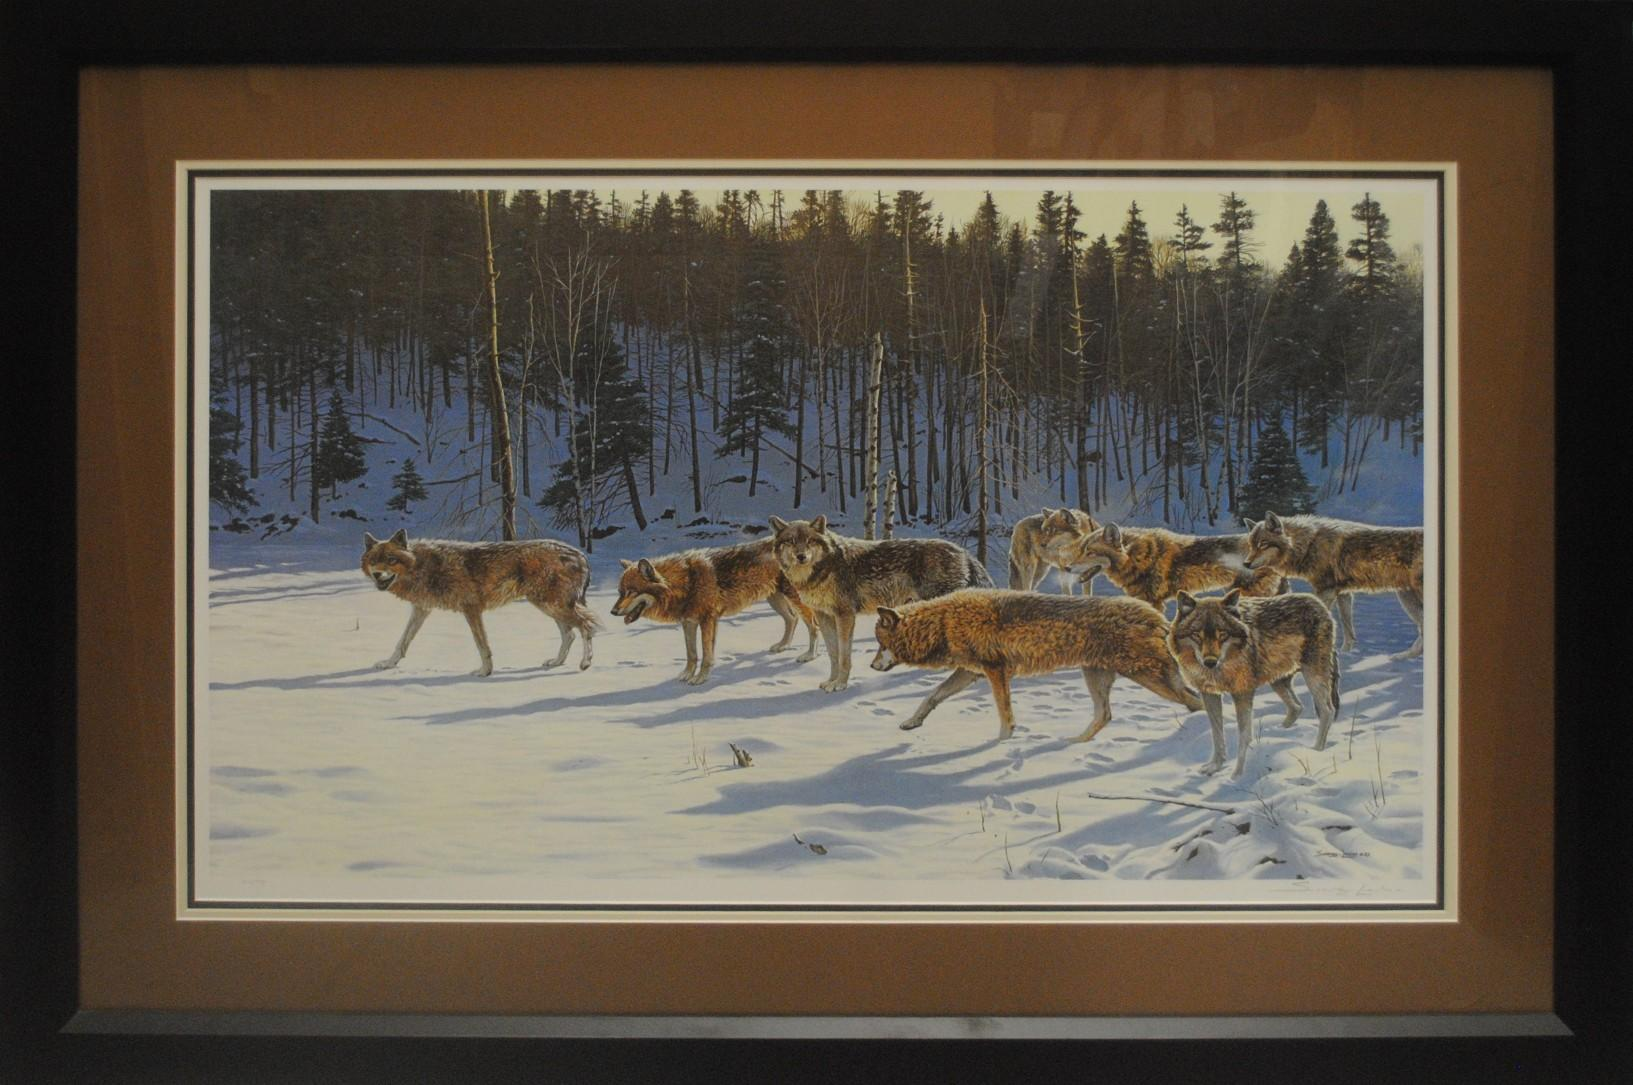 """John Seerey-Lester's """"The Gathering- Gray Wolves"""" Limited Edition Print"""